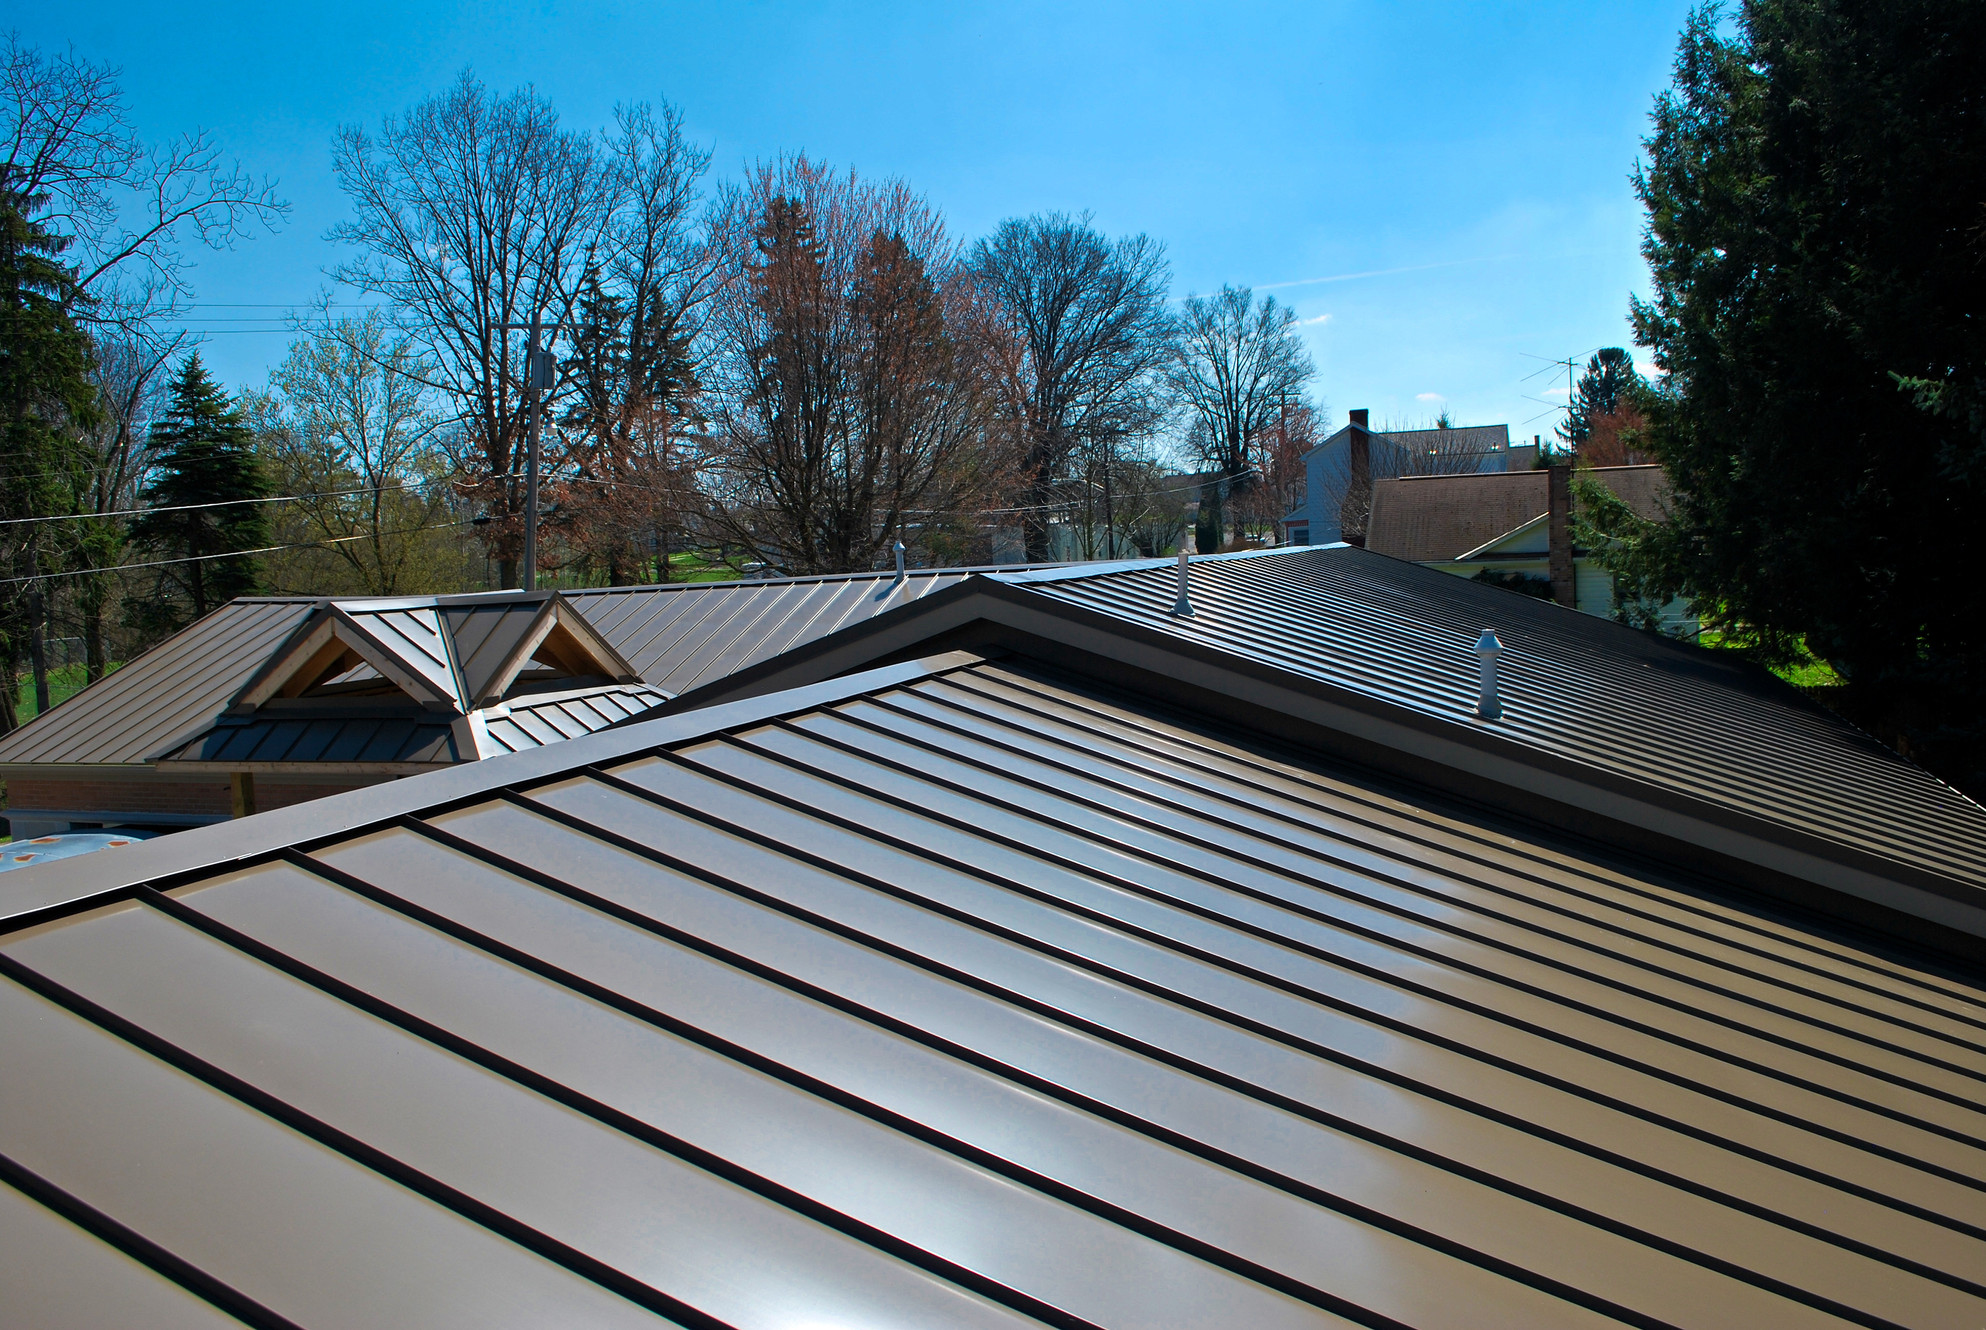 Extreme Roofing Inc Southwestern Pennsylvania Metal Roofing Experts